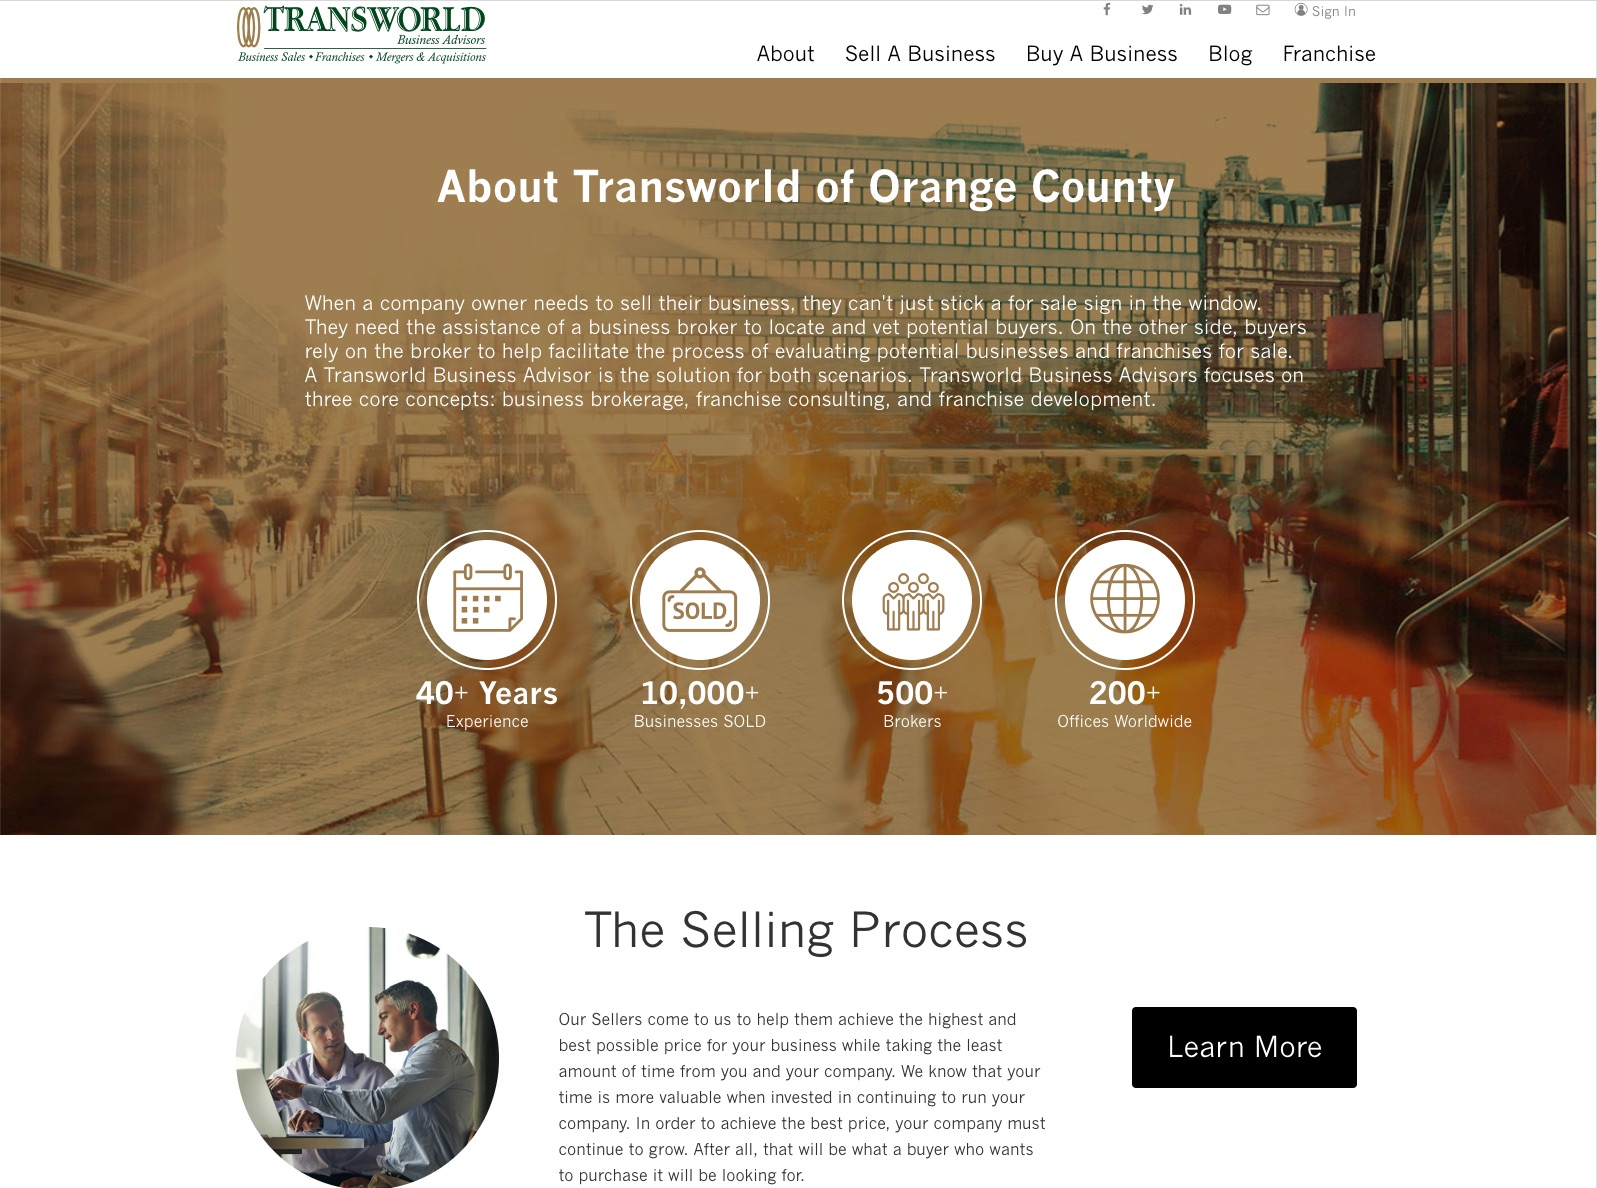 www.tworld.com/orangecounty